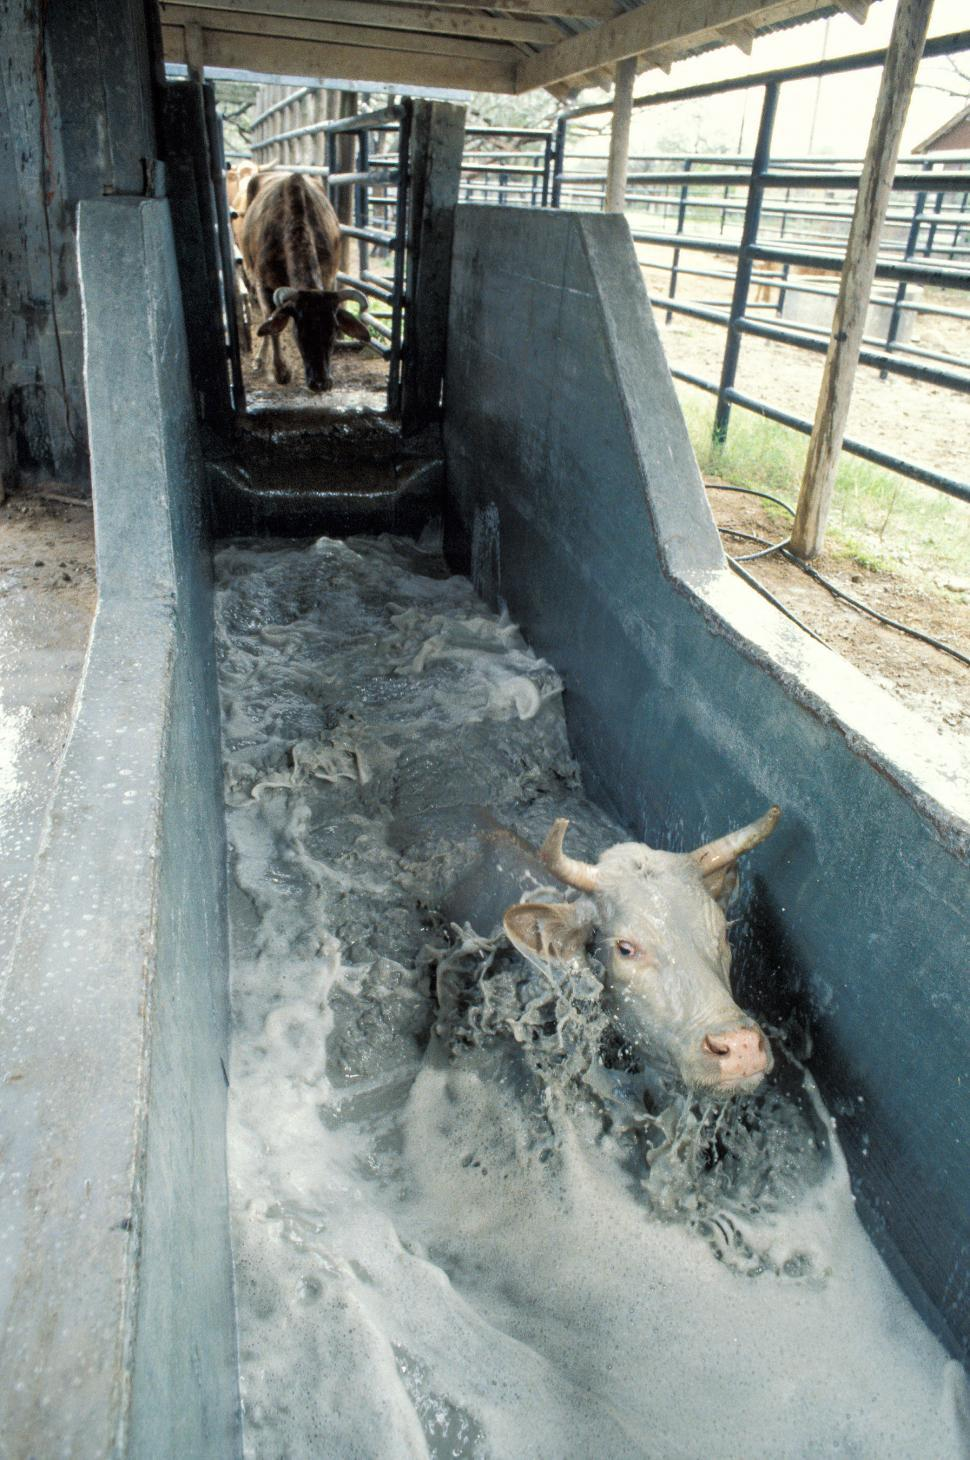 Download Free Stock HD Photo of Cow bathing  Online